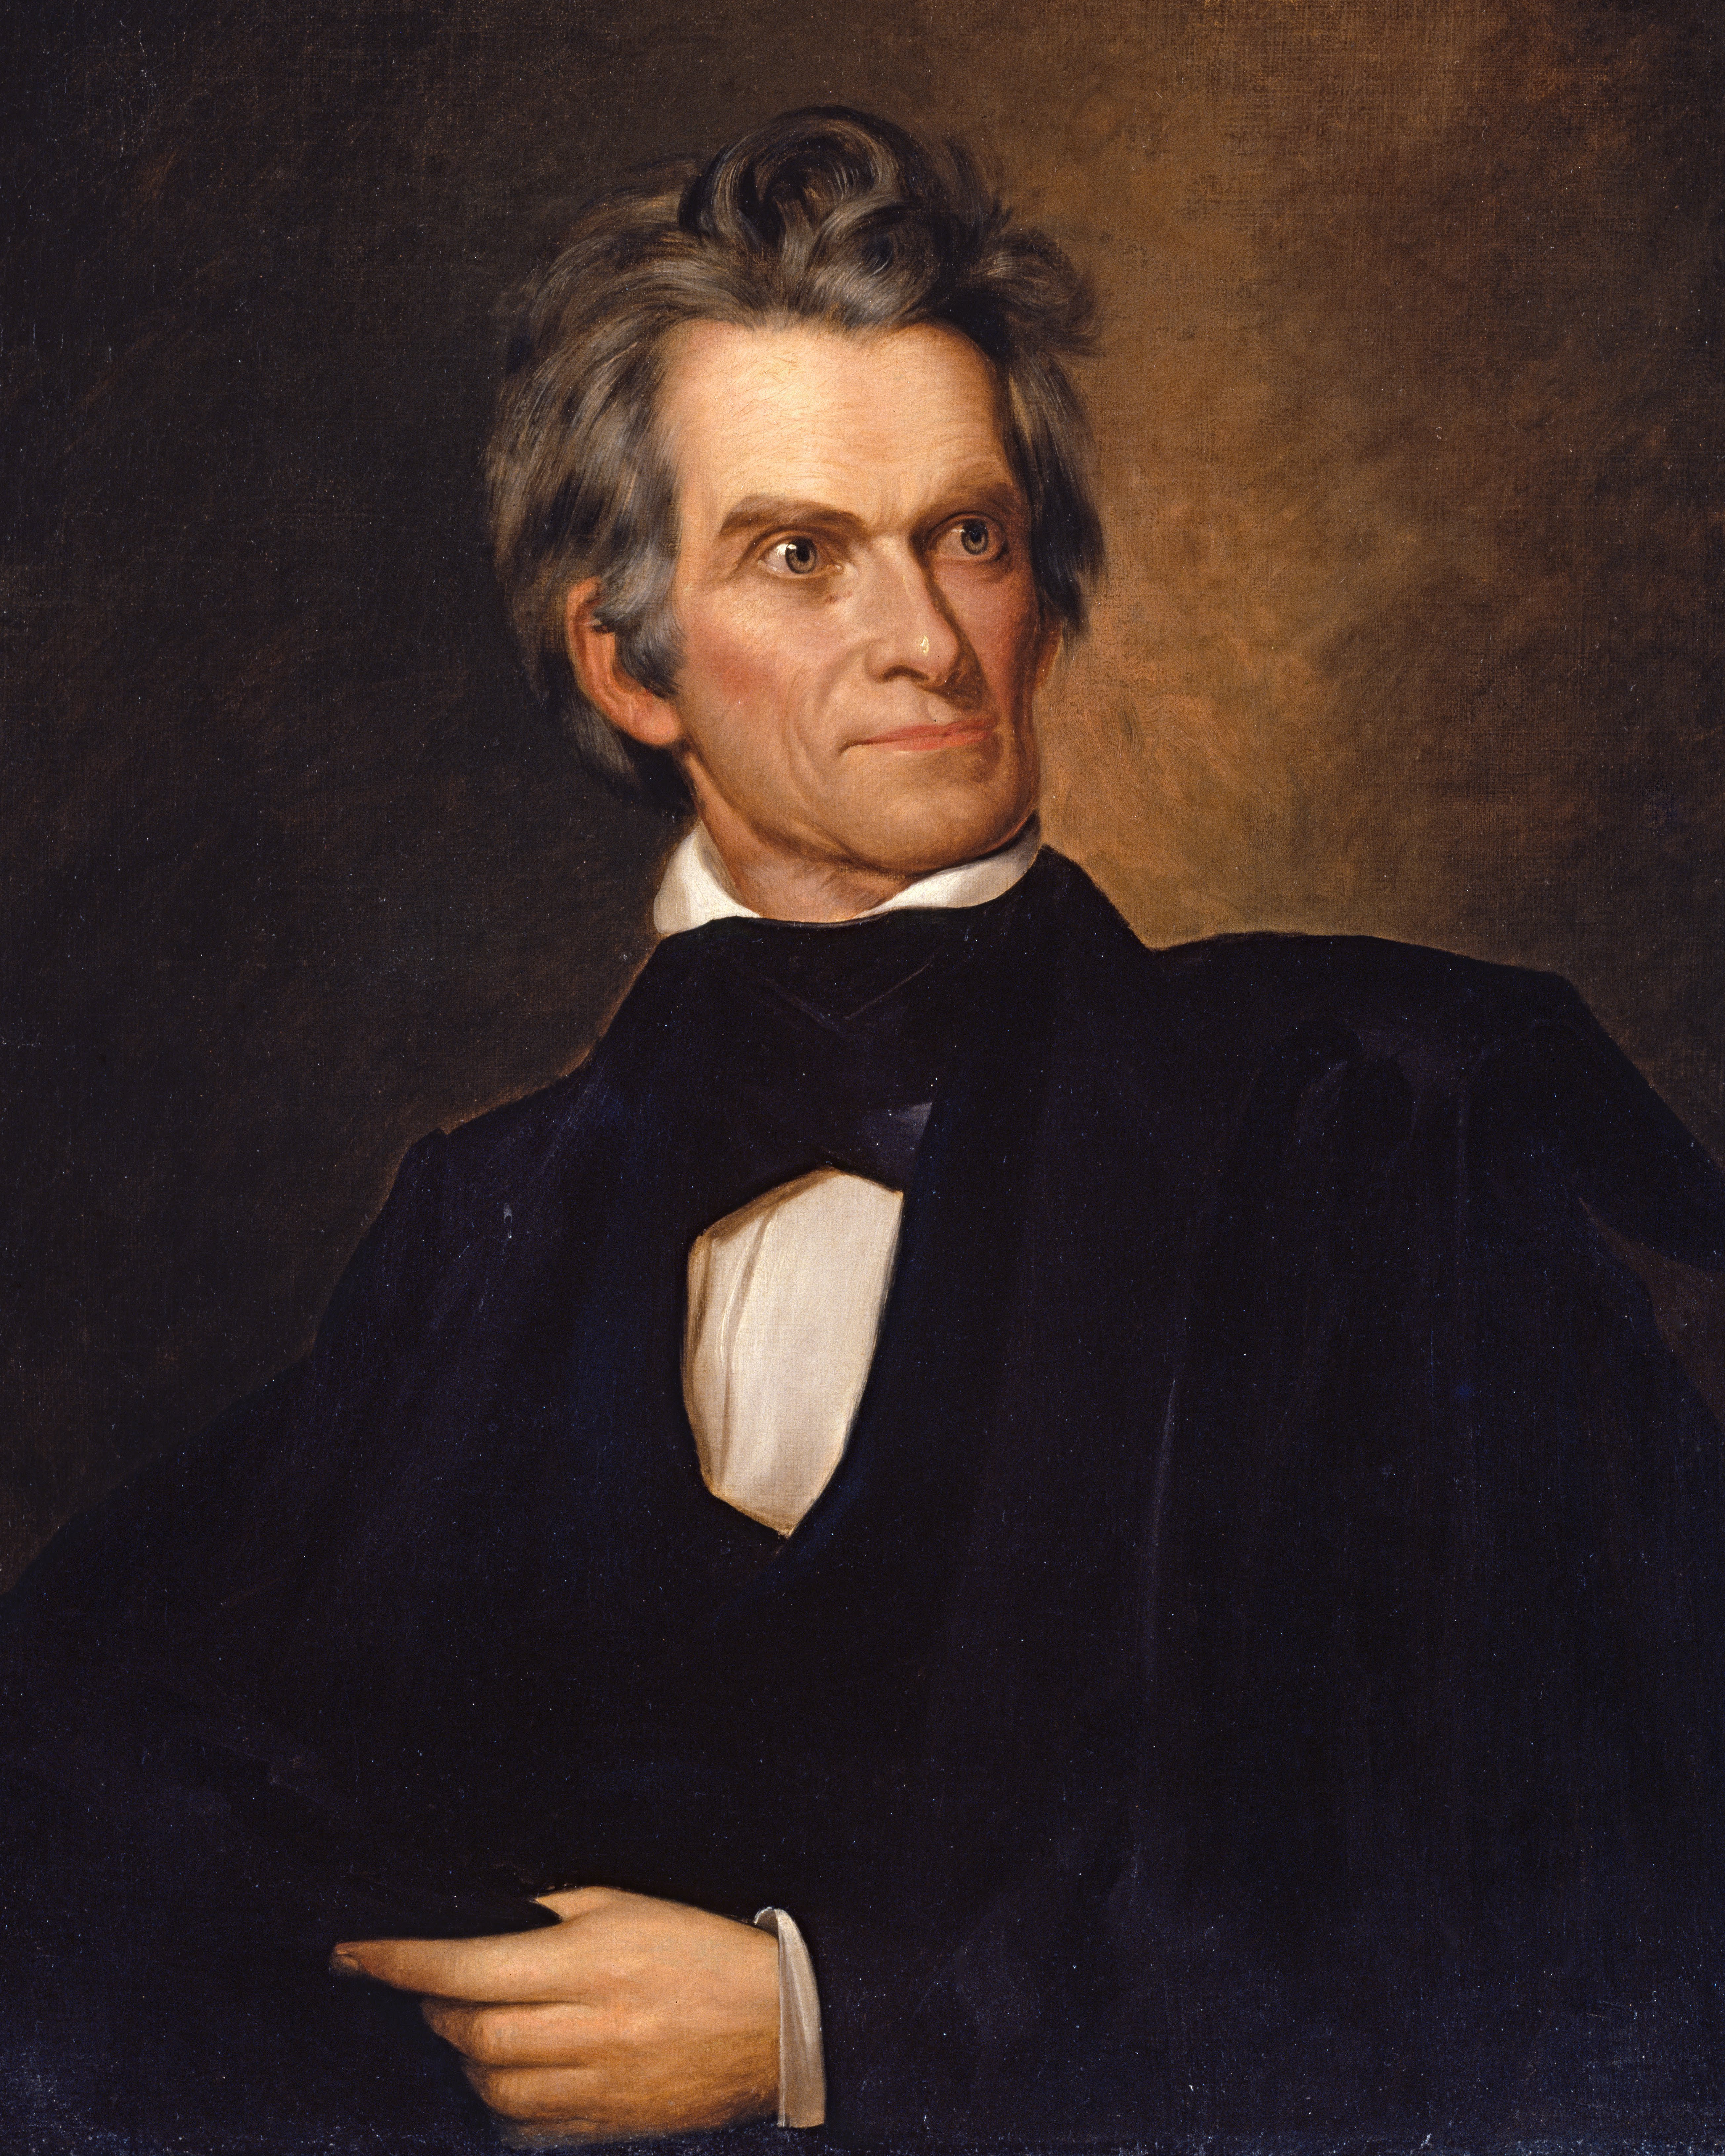 a biography of john caldwell calhoun John caldwell calhoun's biography and life storyjohn caldwell calhoun (march 18, 1782 - march 31, 1850) was a leading american politician and political theorist from south carolina during the first half of the 19th cen.